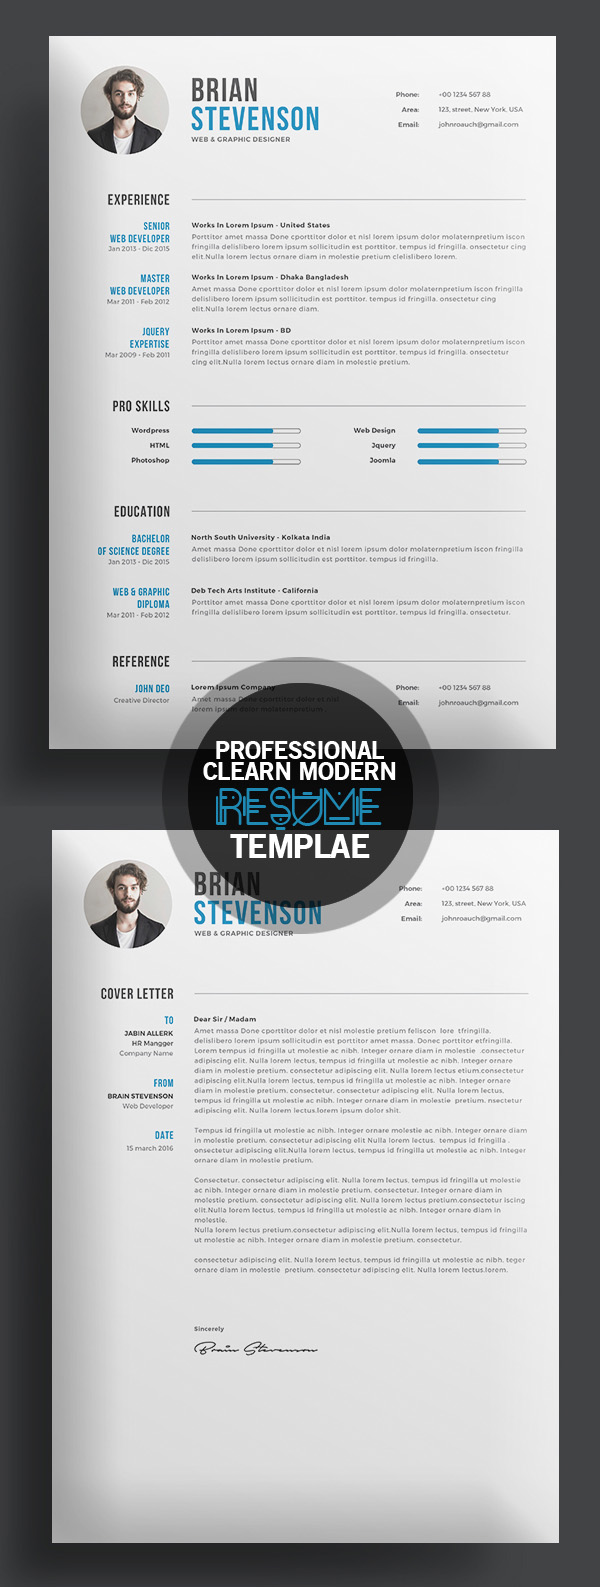 50 Best Resume Templates For 2018 - 31